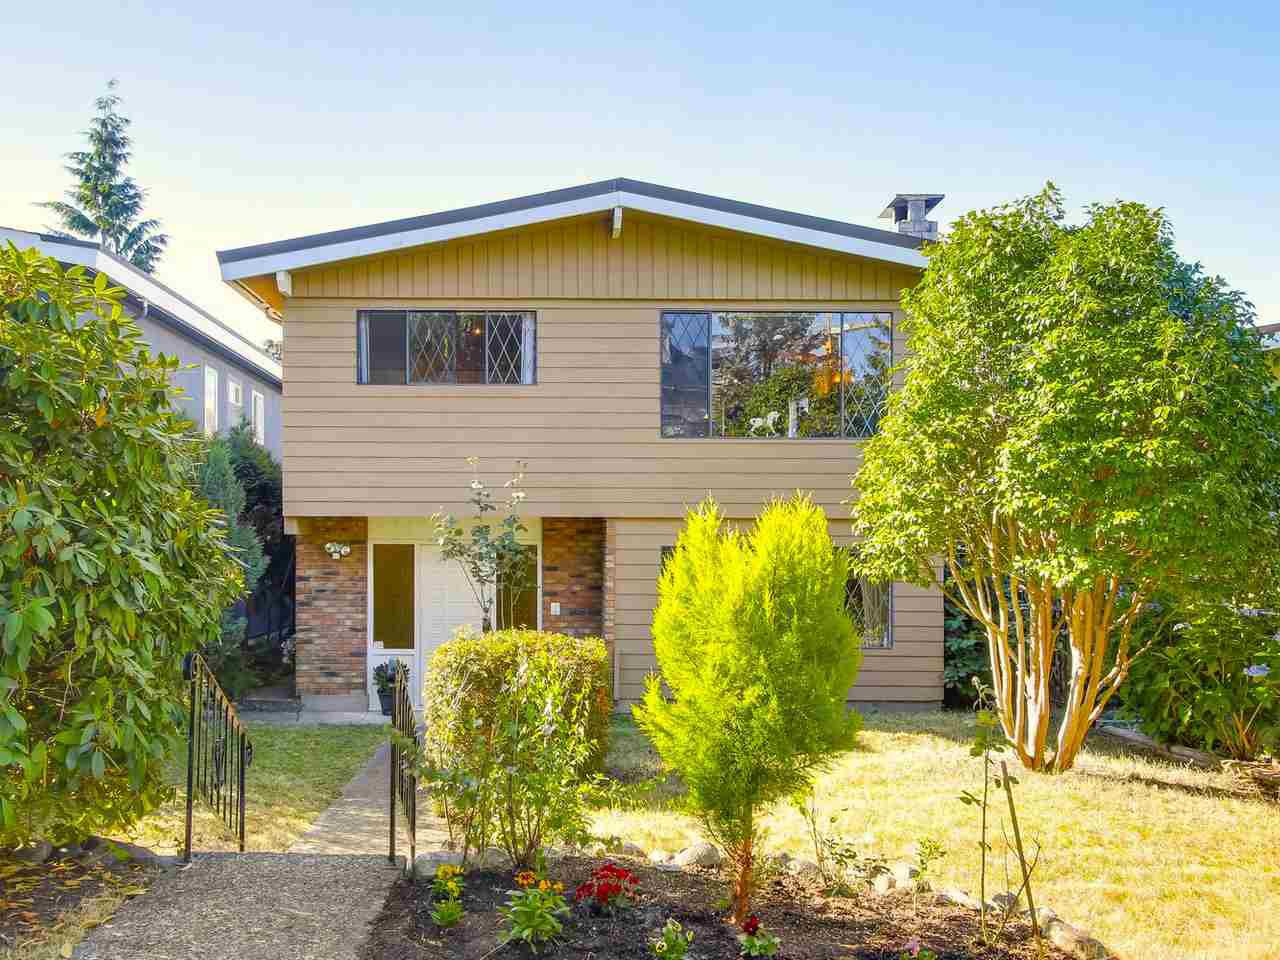 Main Photo: 3576 W 31ST Avenue in Vancouver: Dunbar House for sale (Vancouver West)  : MLS®# R2199102